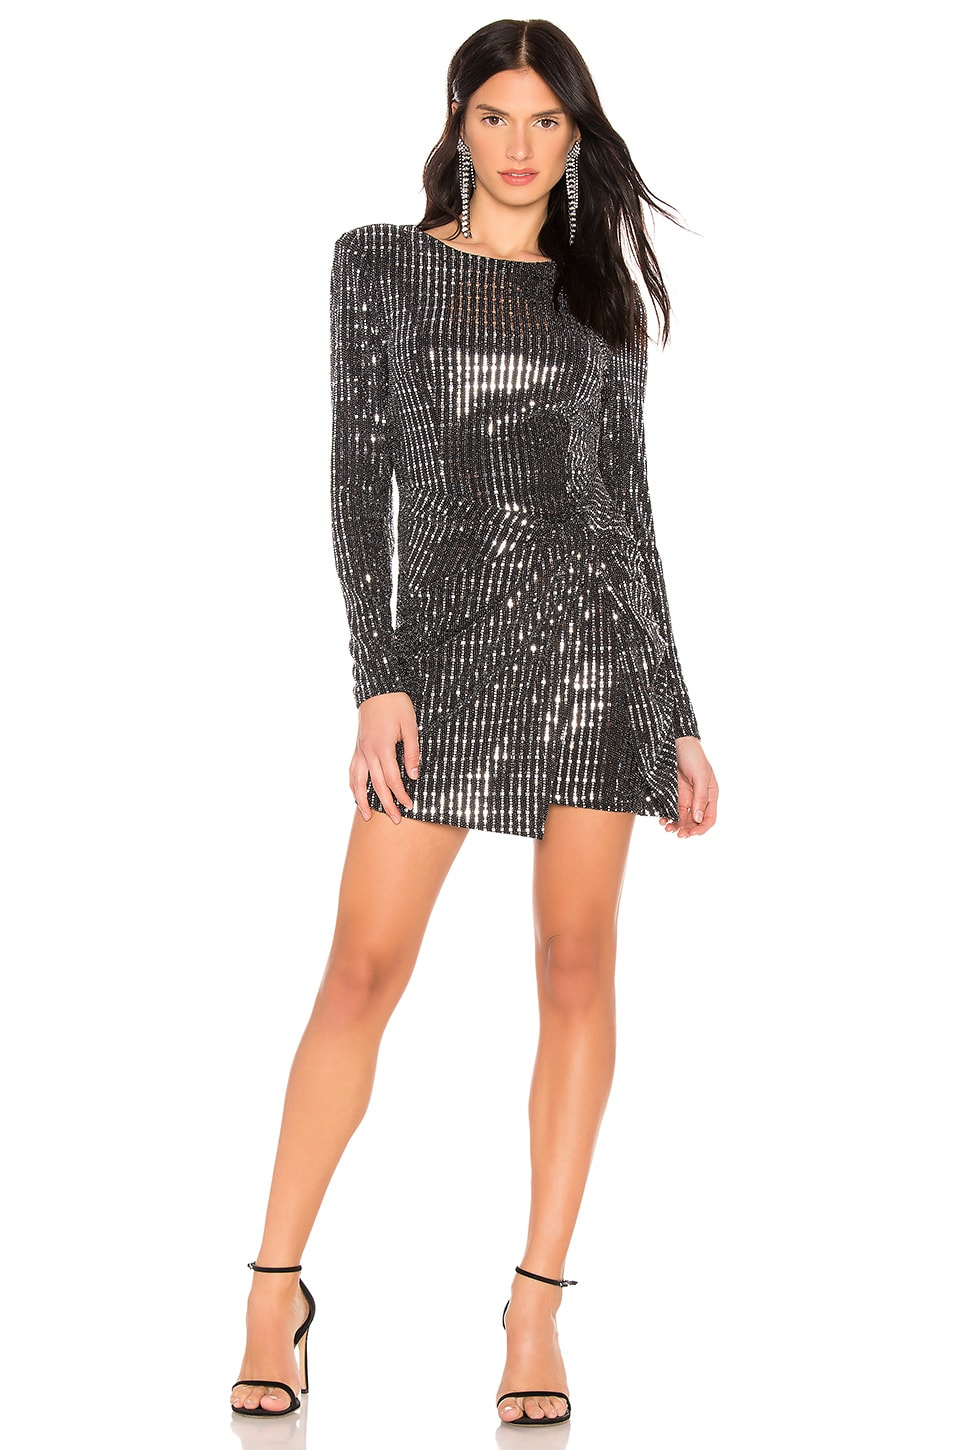 ASTR the Label On The List Dress in Black Mirror